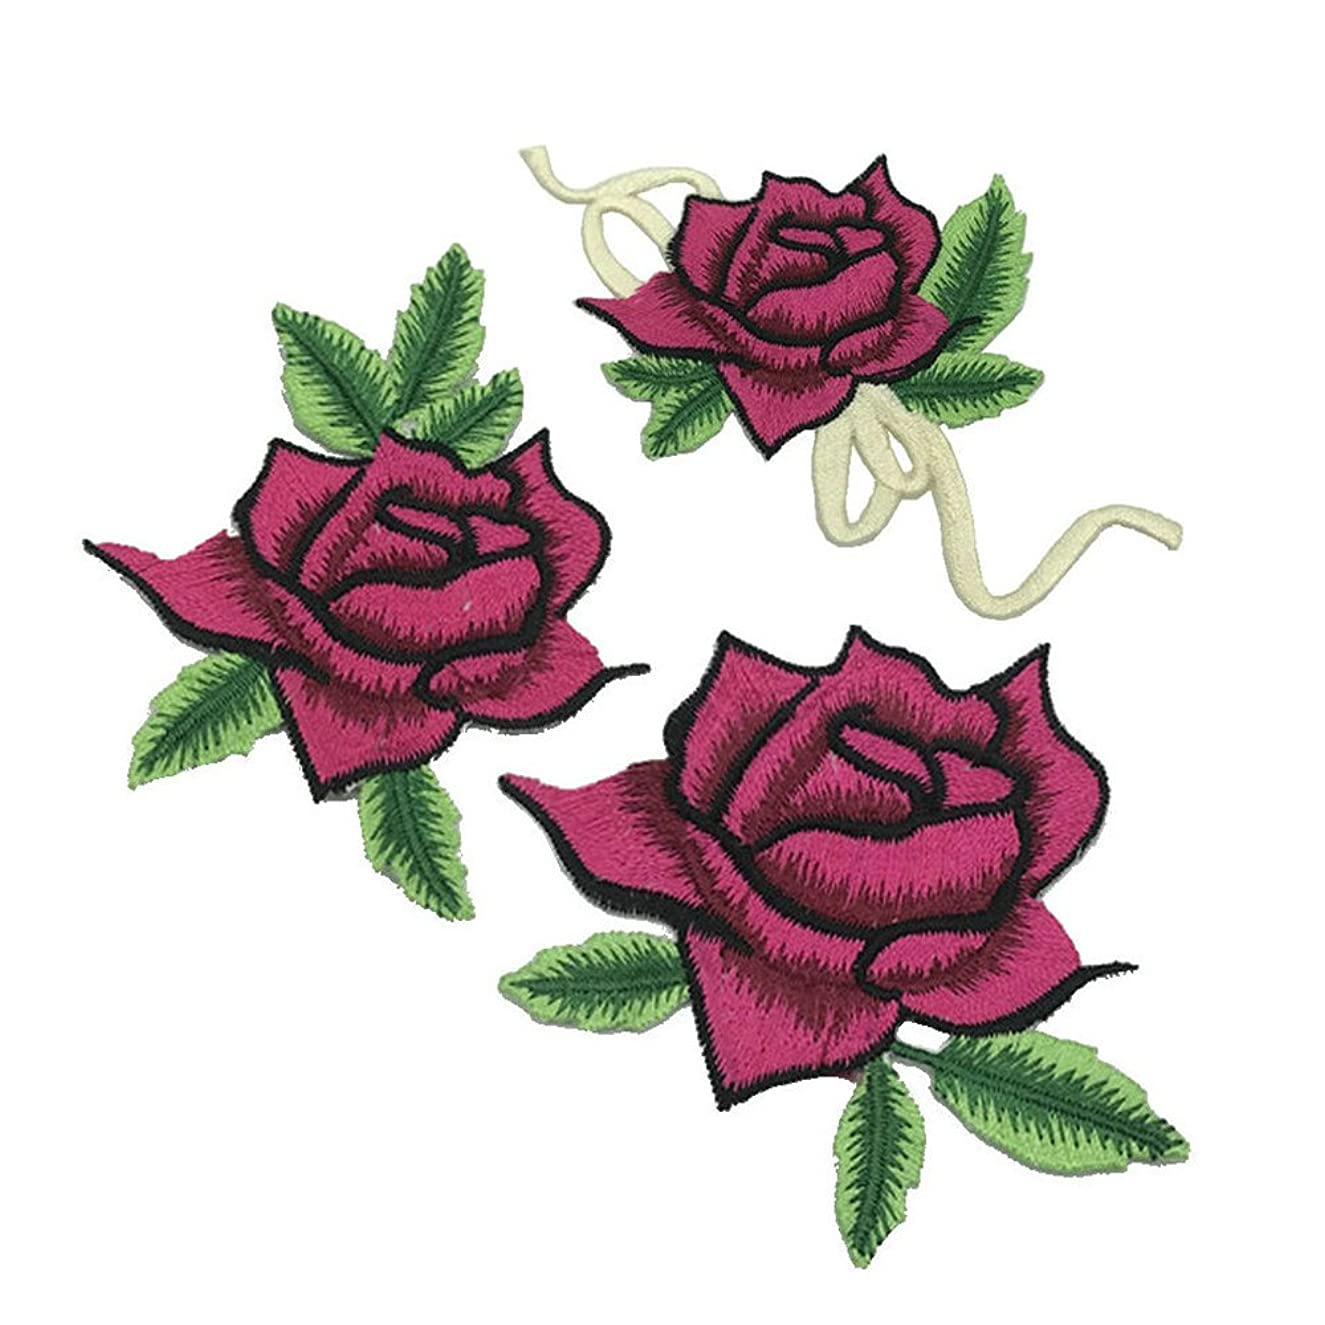 3pcs/ set Rose Embroidery Iron On Flower Patches For Craft Sewing Clothing Scrapbooking Decorative Applique